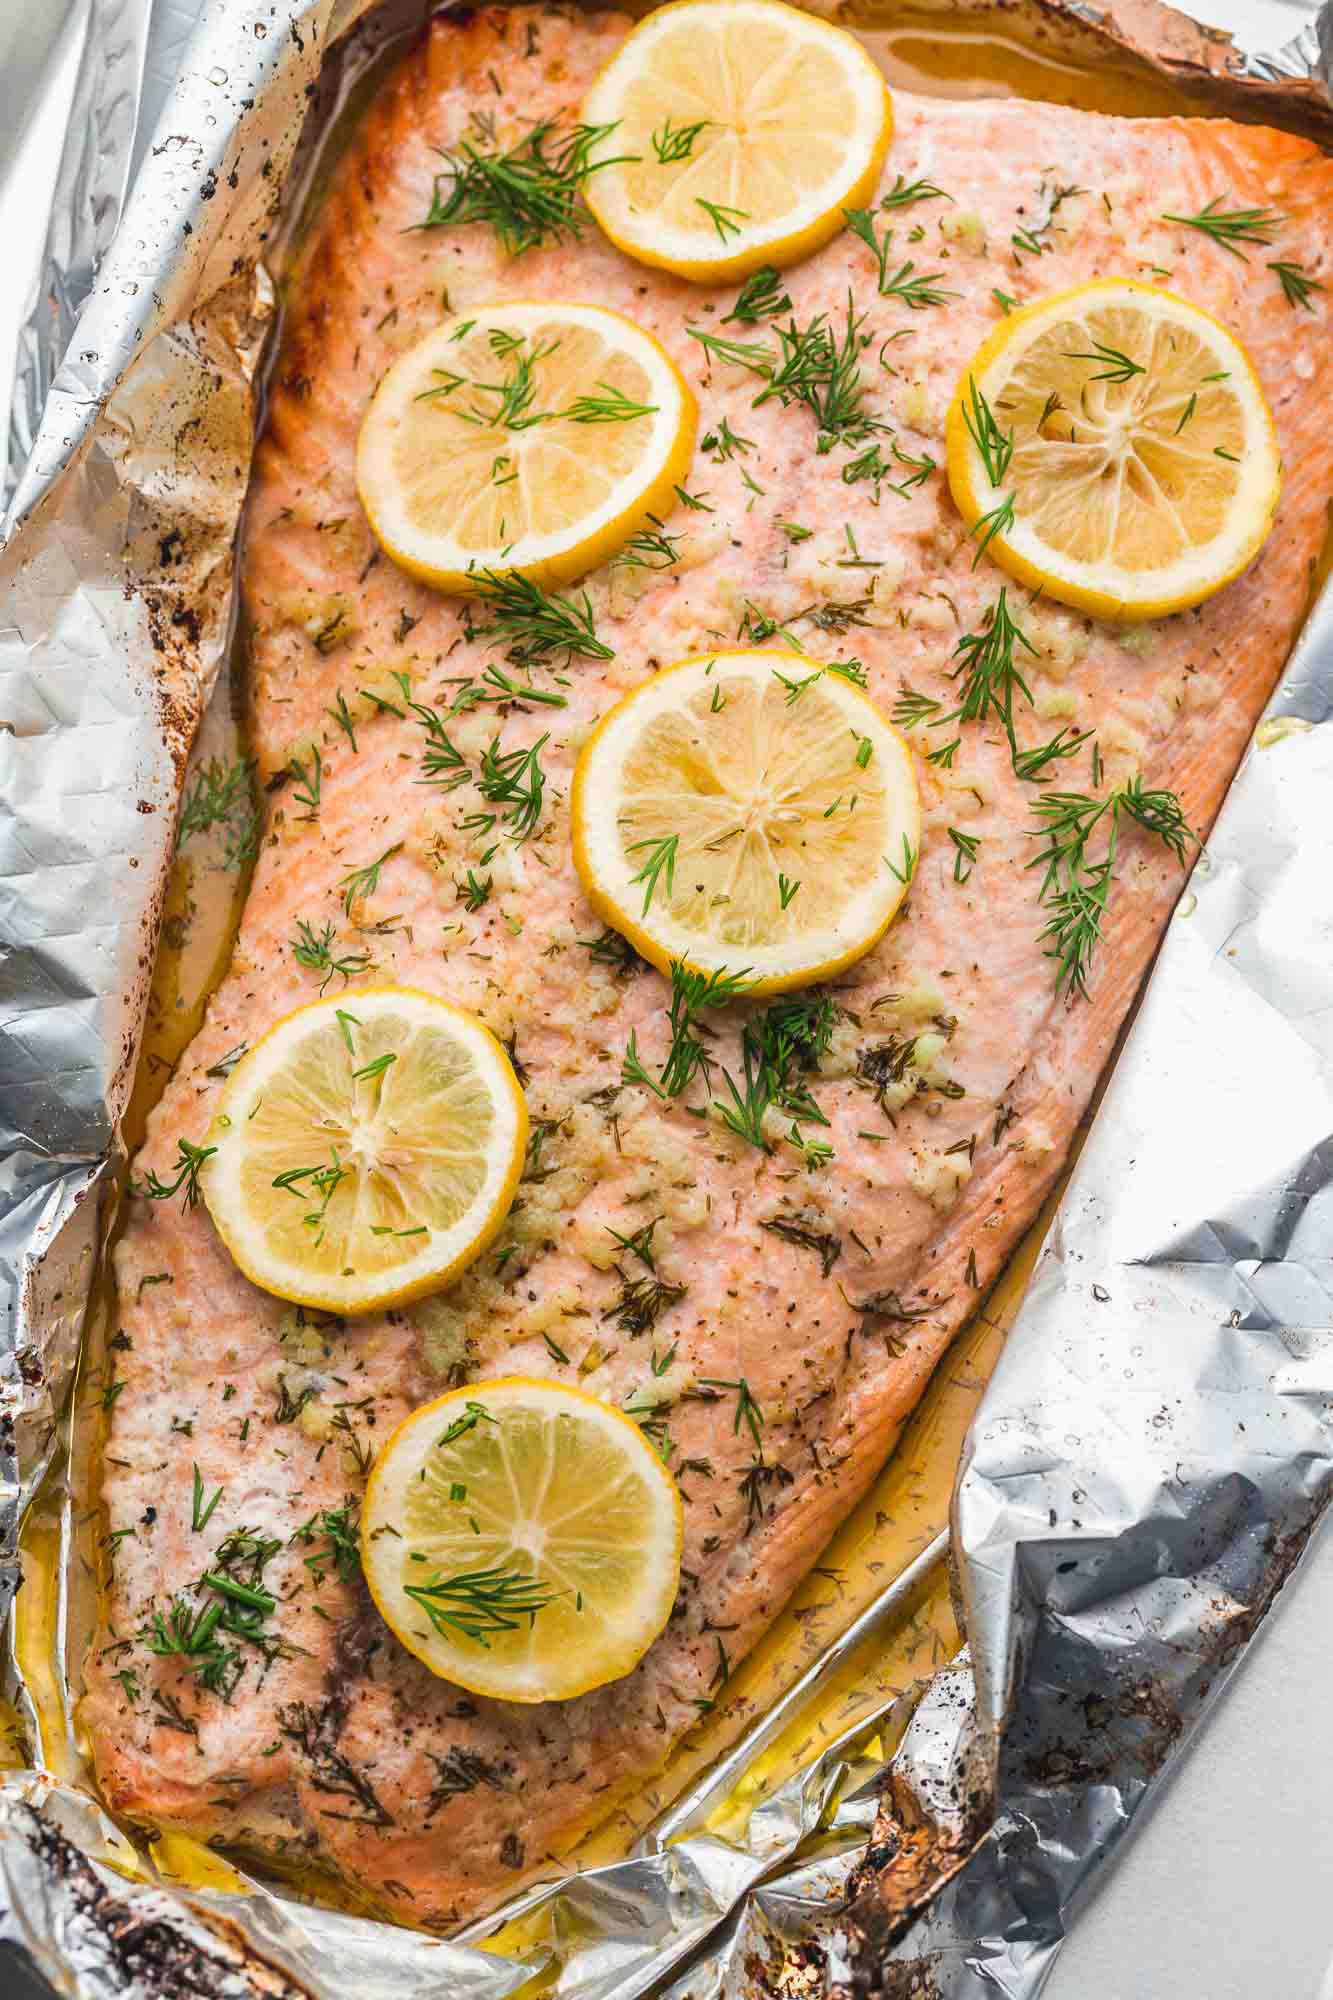 Whole side of salmon baked in foil with lemon slices, garlic butter, and dill.